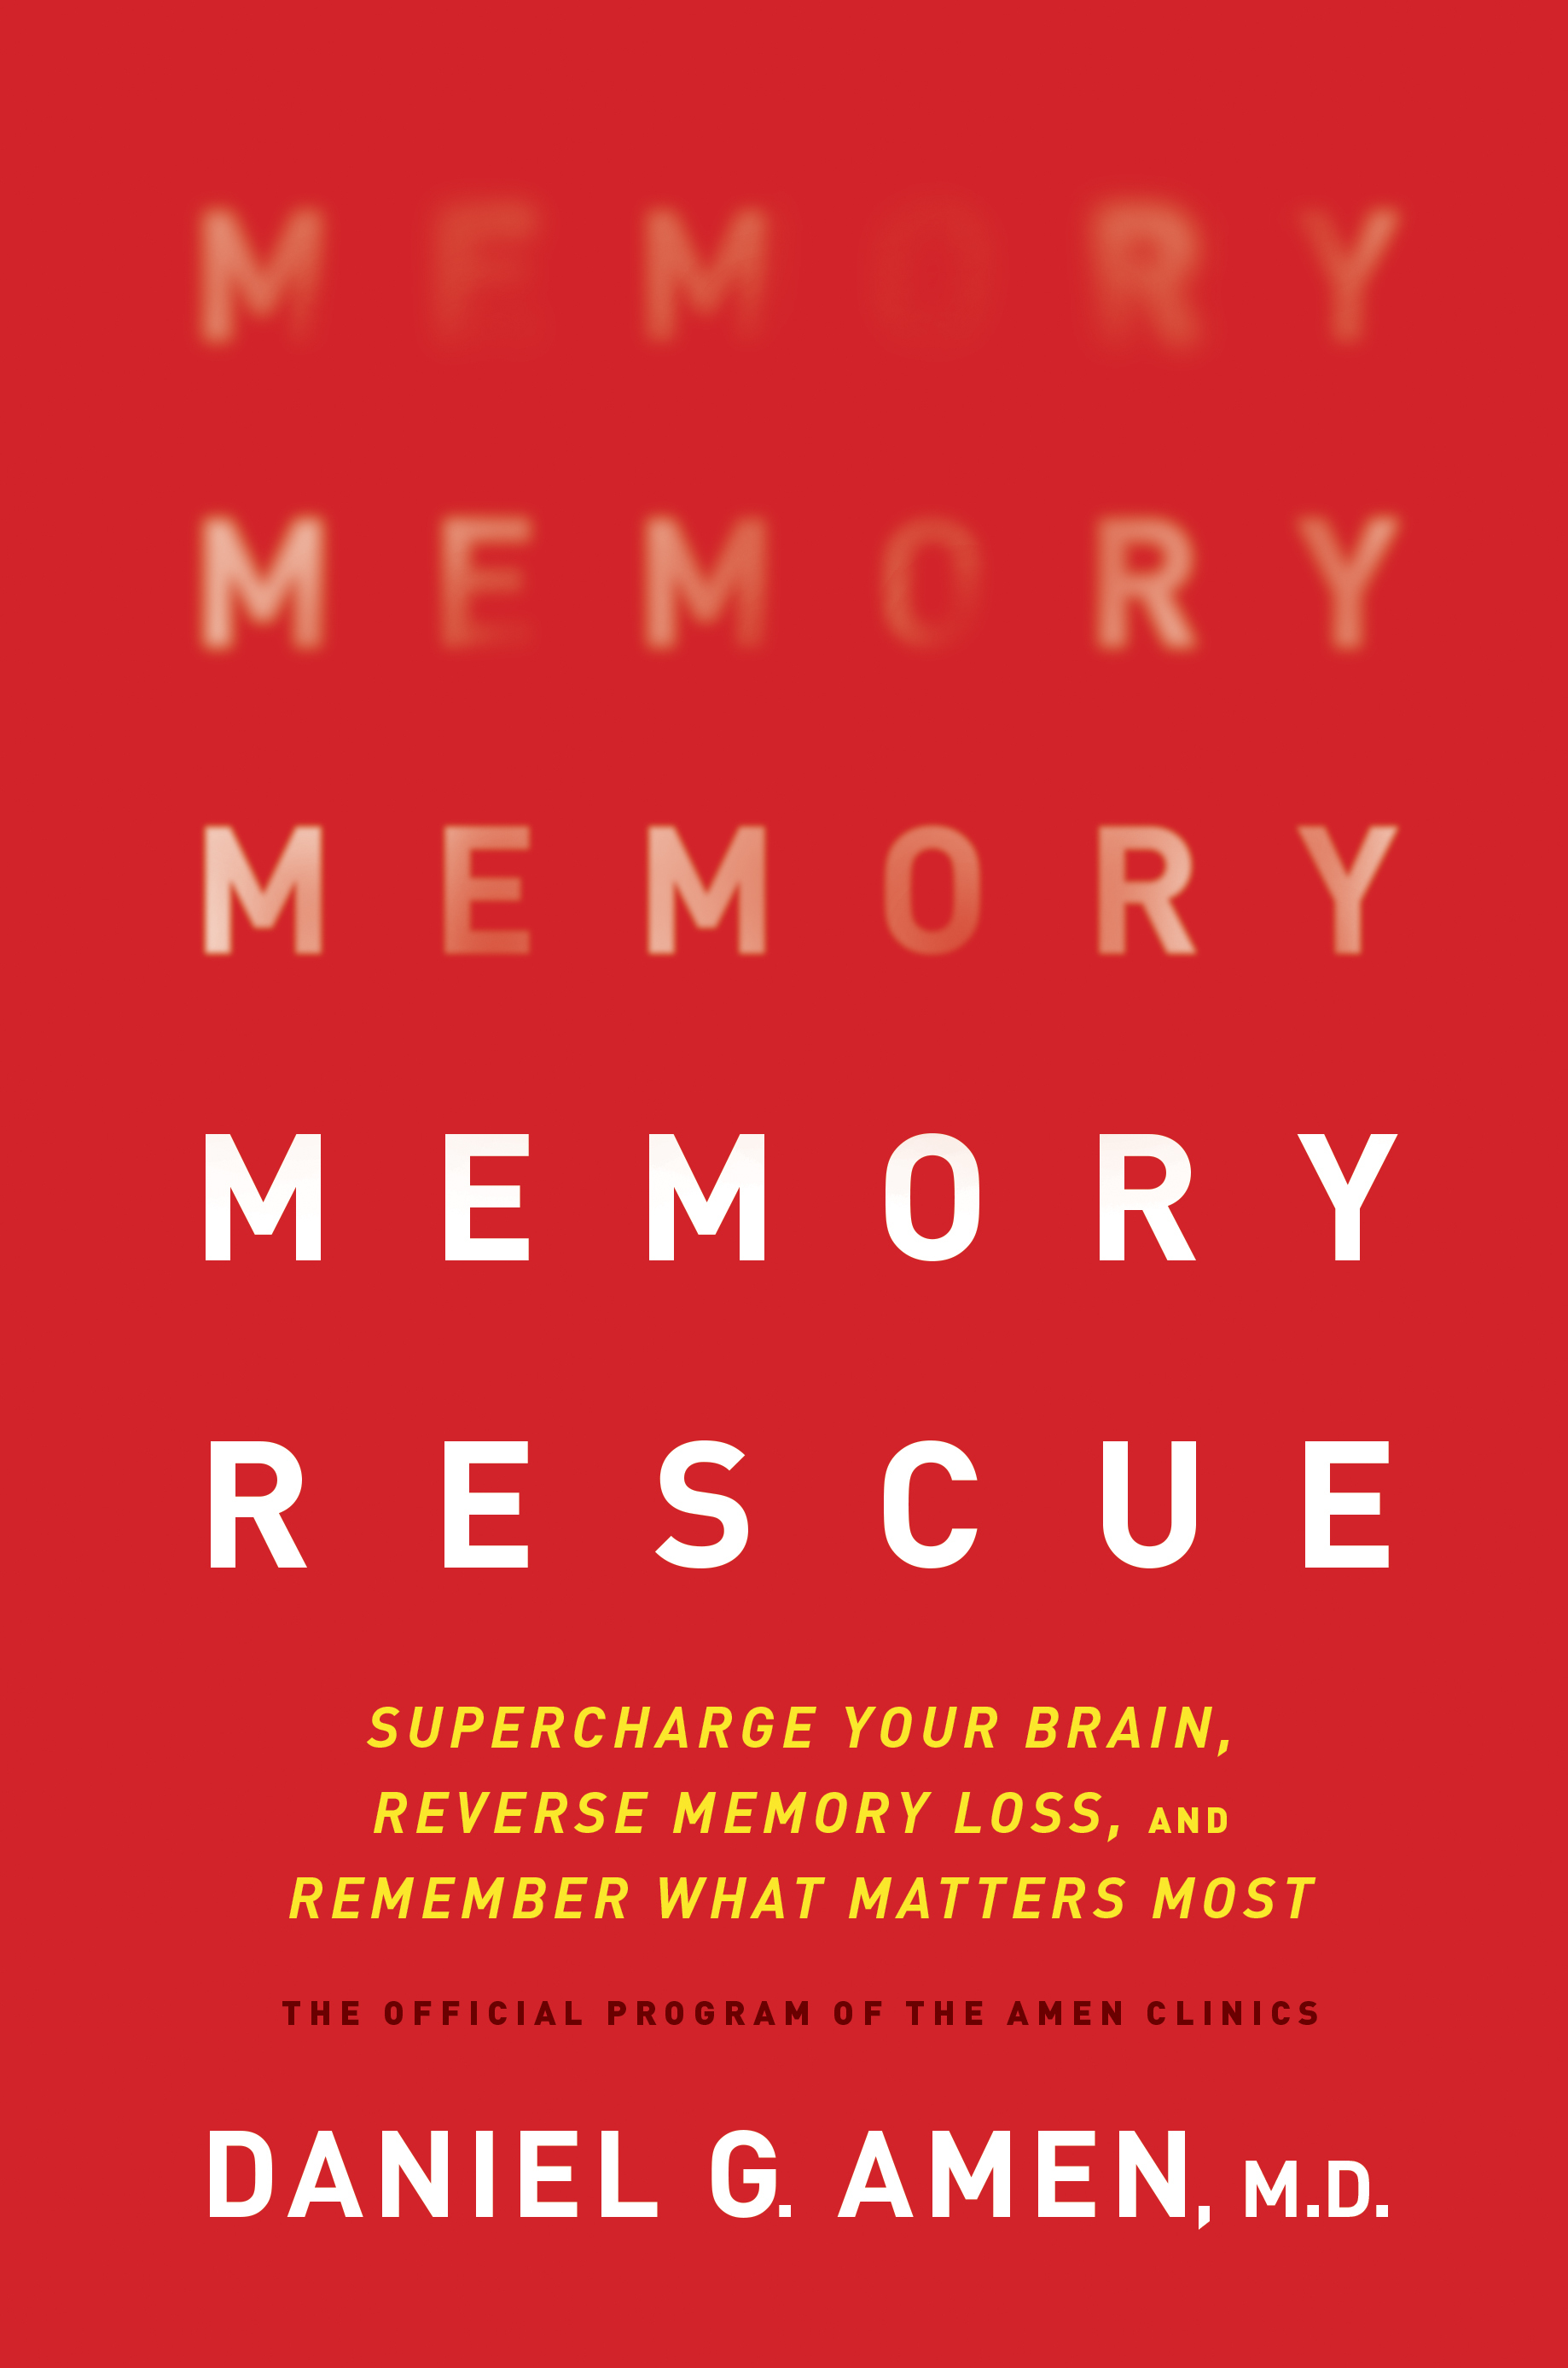 Memory Rescue Supercharge Your Brain, Reverse Memory Loss, and Remember What Matters Most